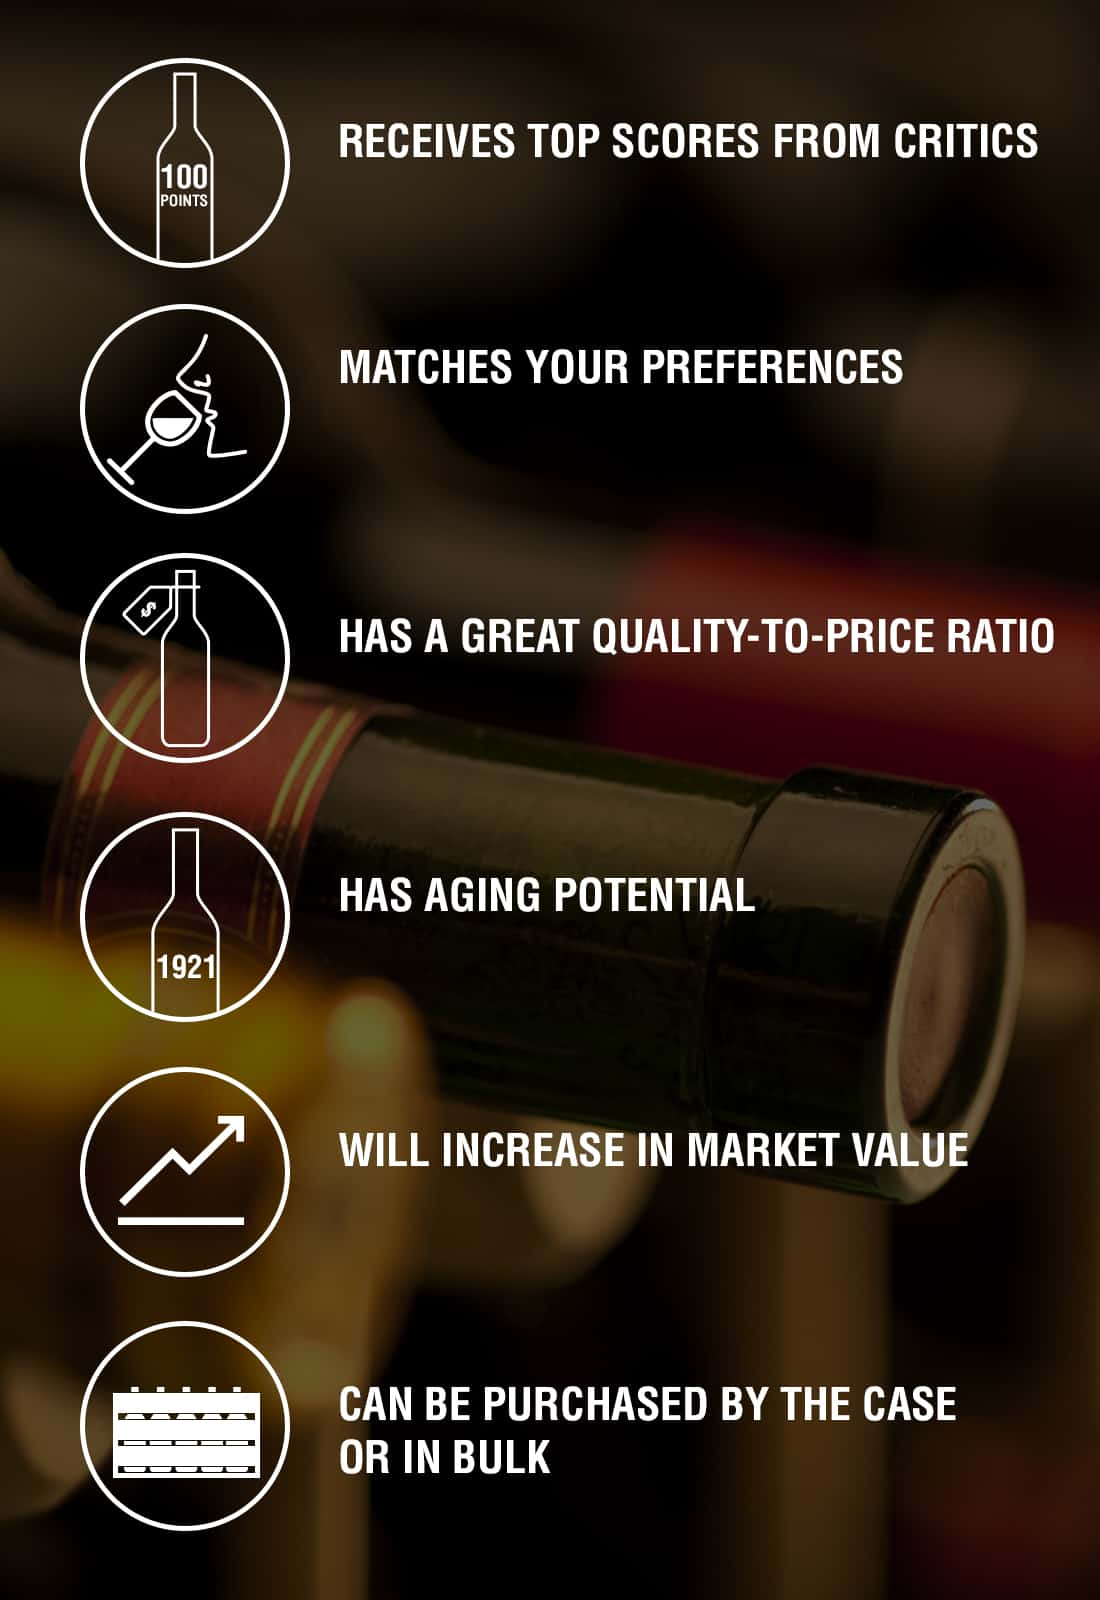 List of characteristics of collectible wines